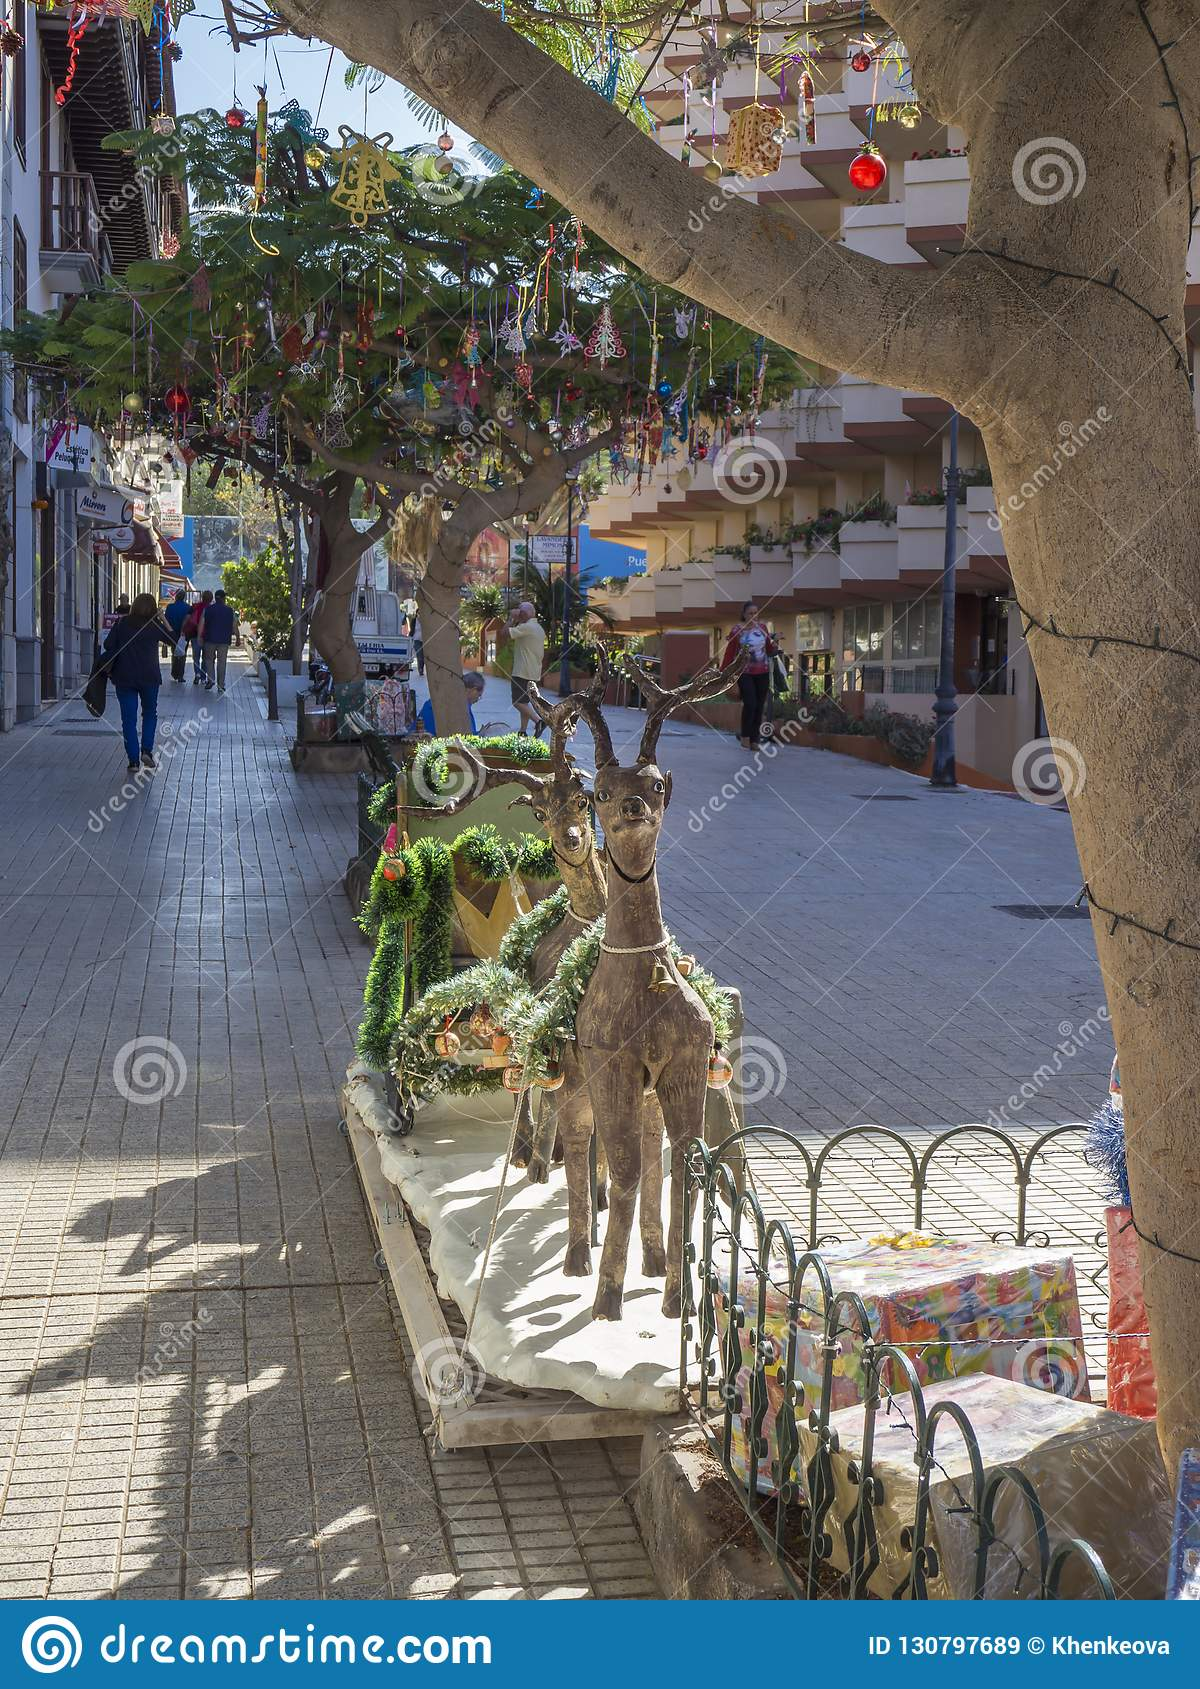 Spain, Canary islands, Tenerife, Puerto de la cruz, December 23, 2017: Street with tropical palm trees decorated with